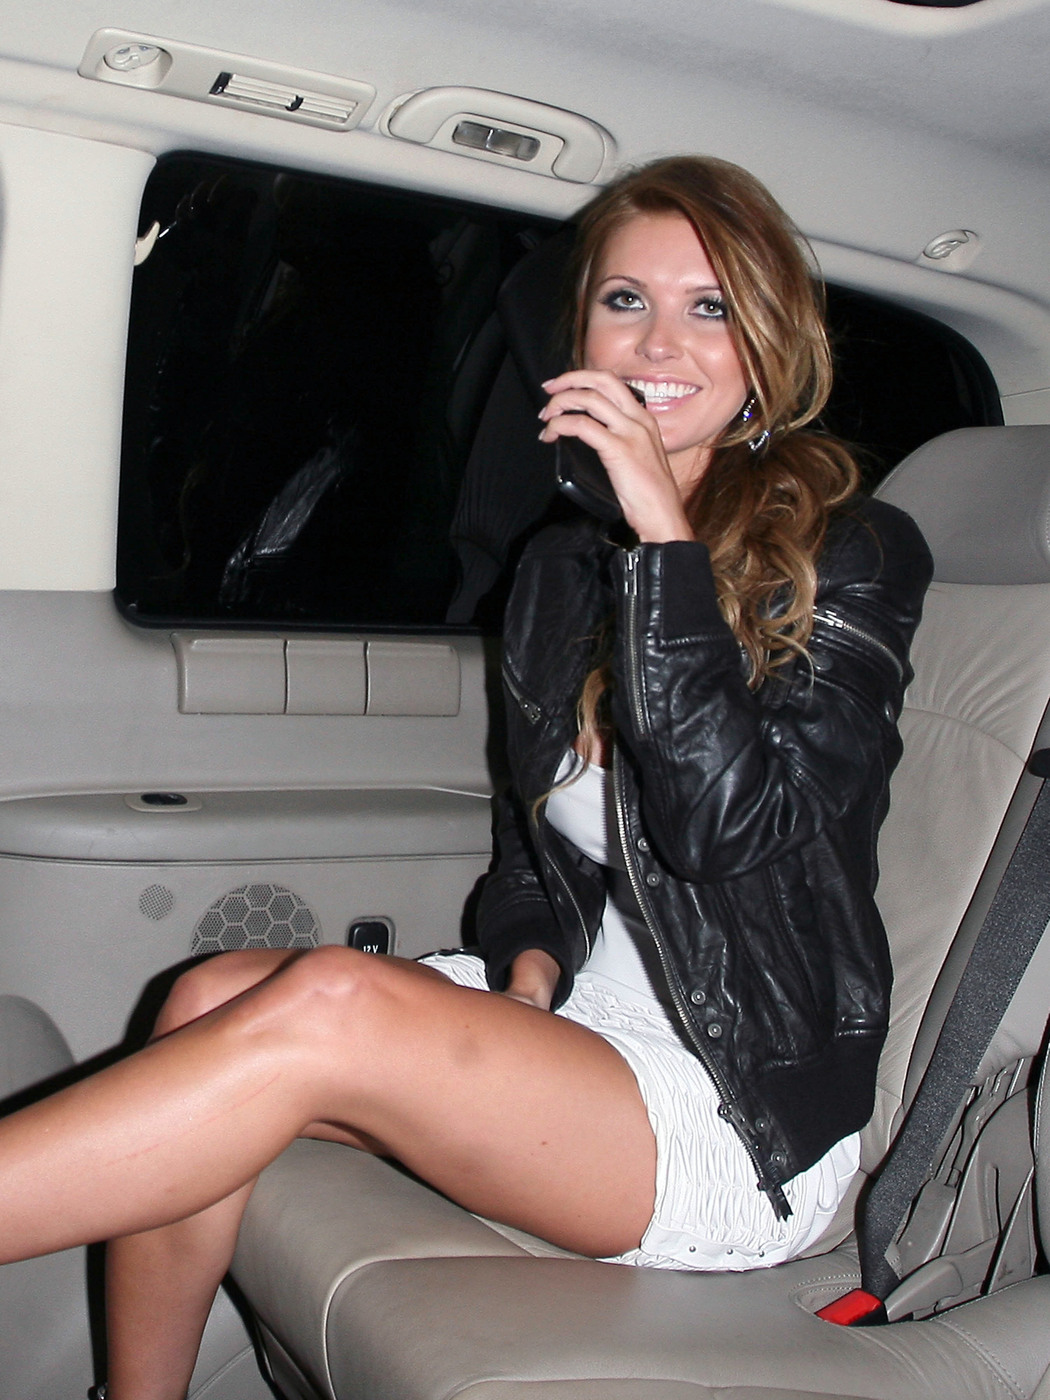 crotch tattoo. An Audrina Patridge Crotch Shot - The Hollywood Gossip